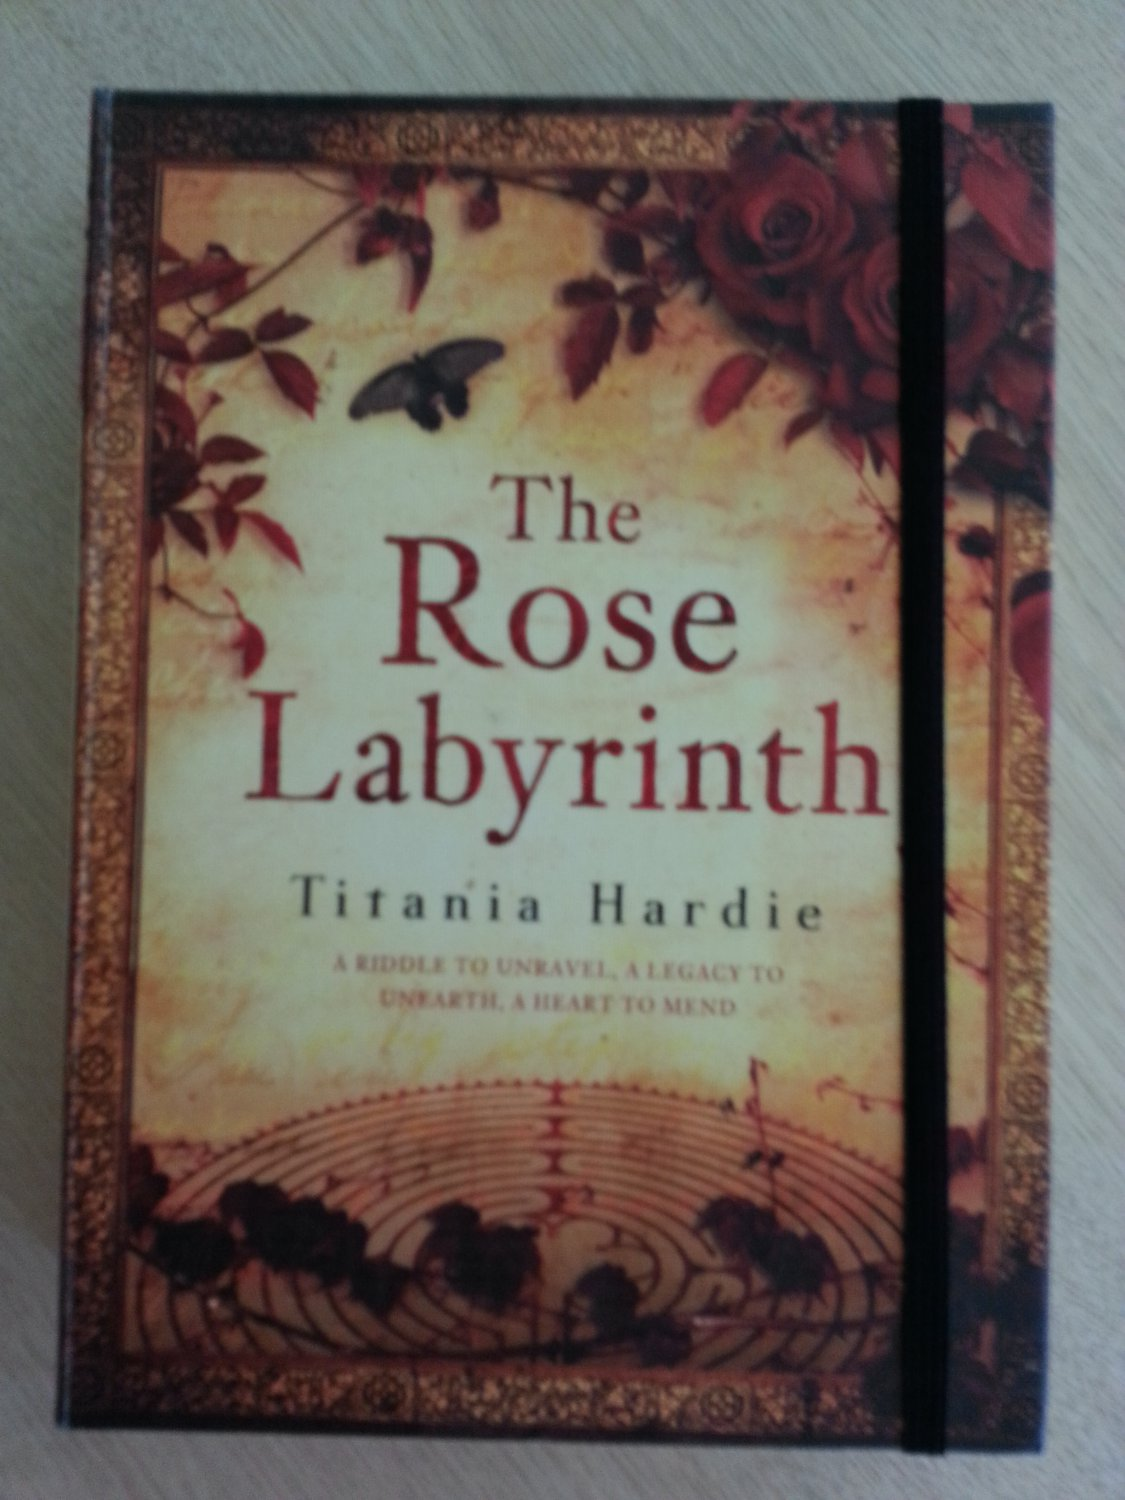 THE ROSE LABYRINTH - Titania Hardie - PART THRILLER, PART HISTORICAL NOVEL, PART TREASURE HUNT!